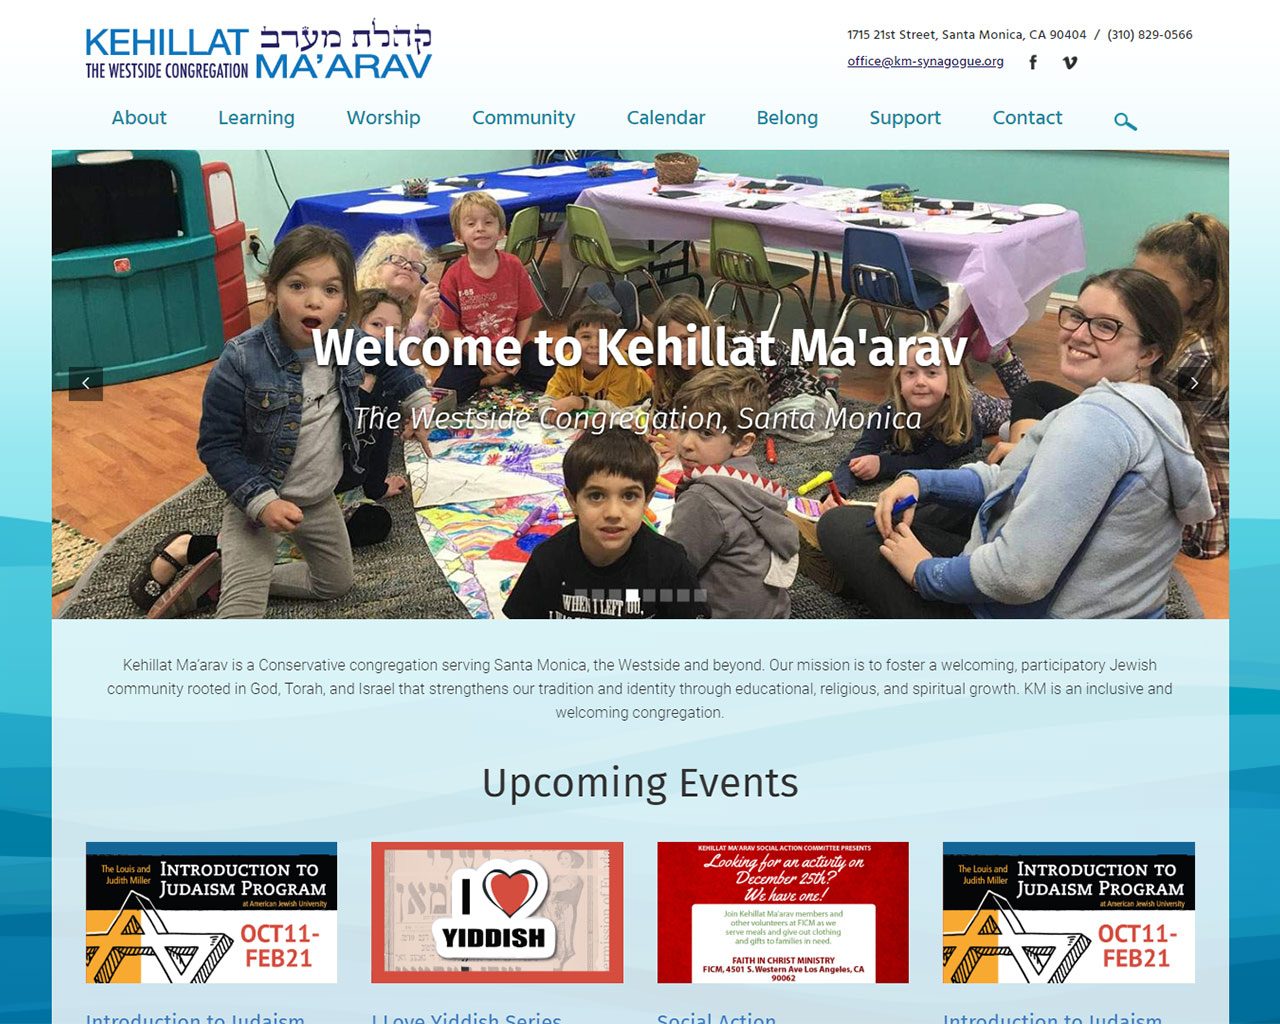 Kehillat Maarav - synagogue website homepage